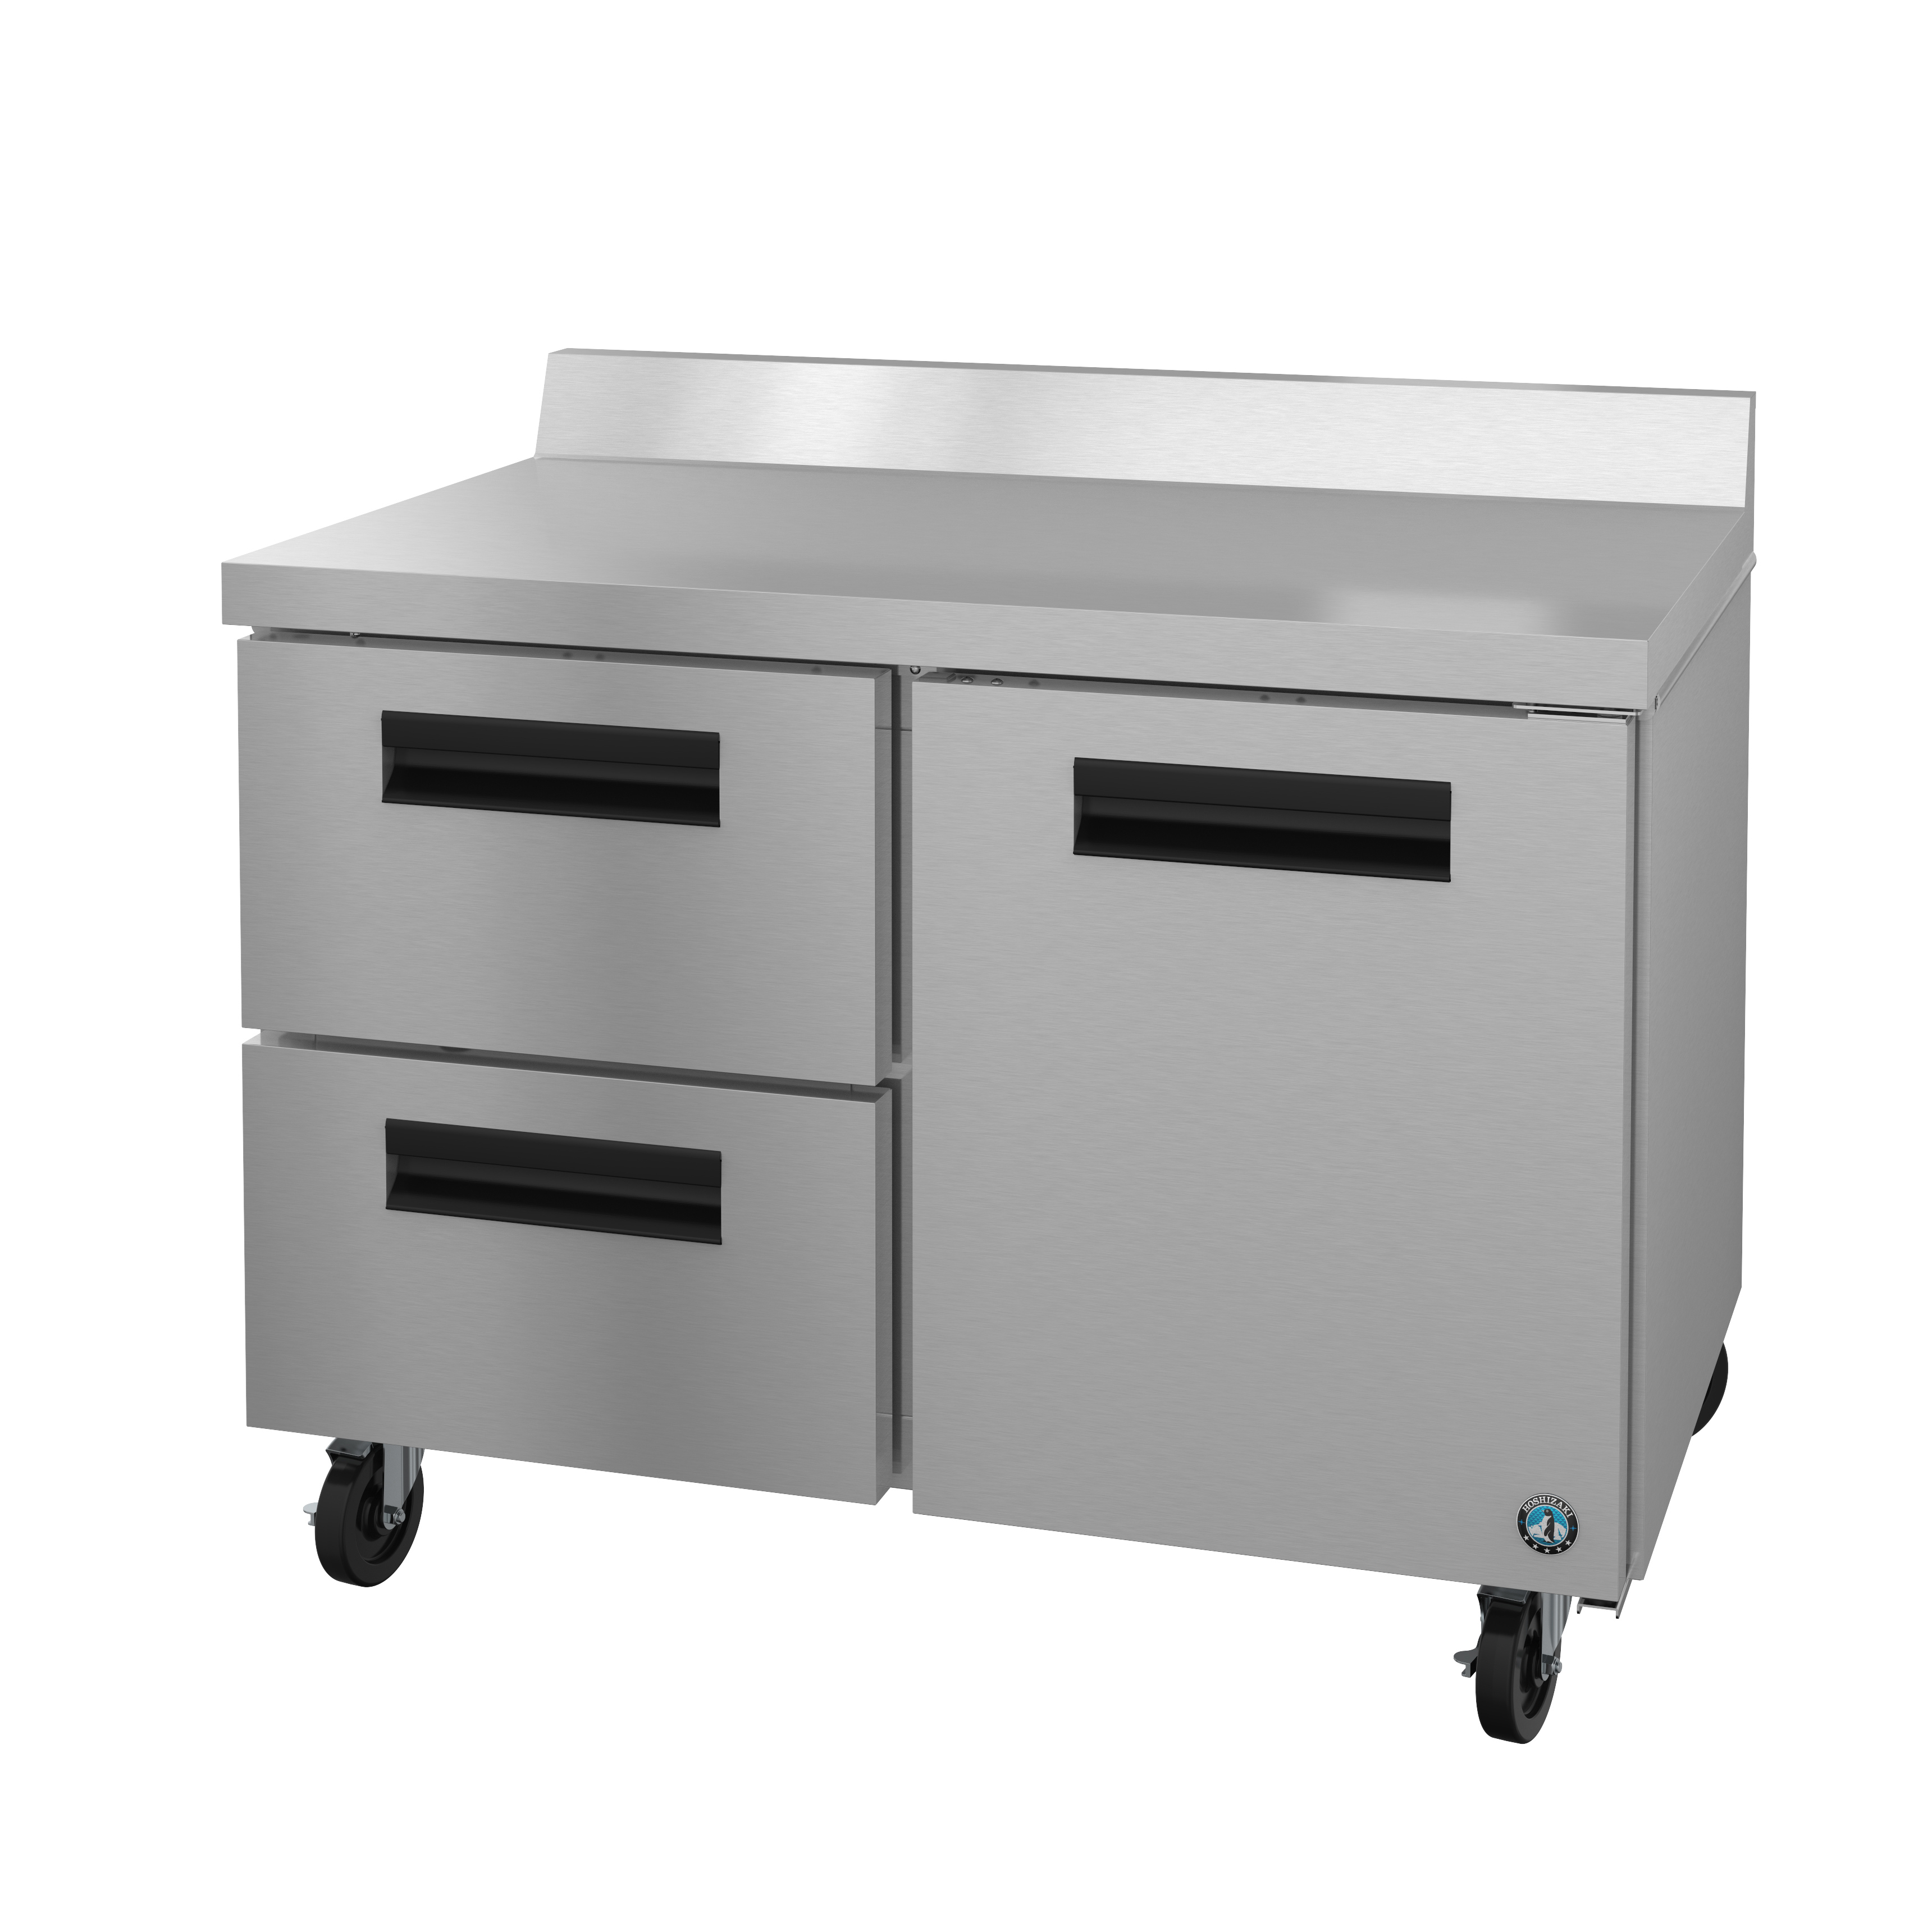 Hoshizaki WR48A-D2 refrigerated counter, work top